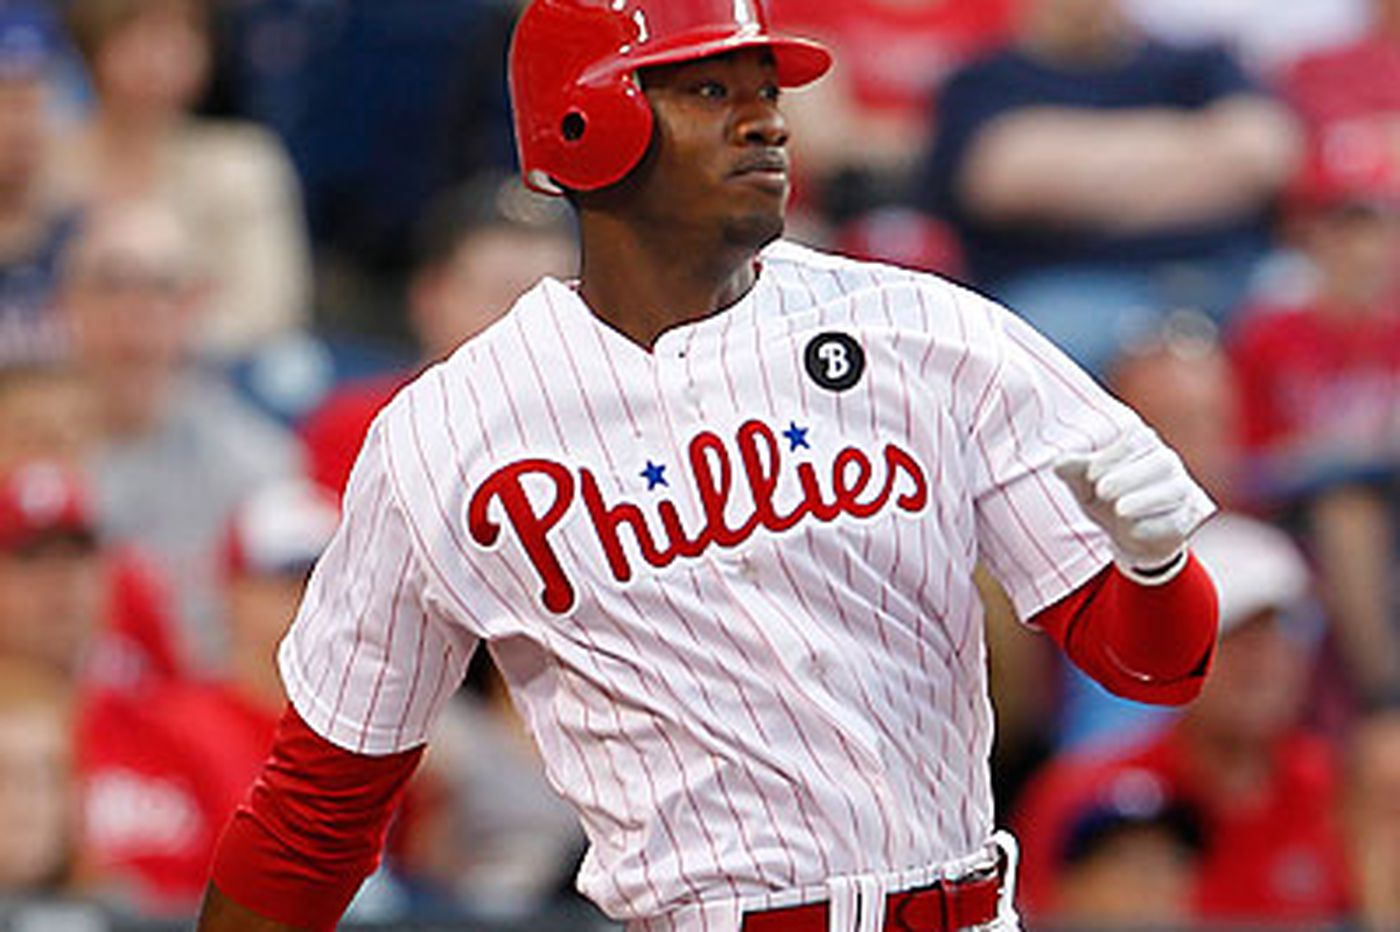 Inside the Phillies: Despite perceptions, Phils' Brown still an untouchable, Amaro says